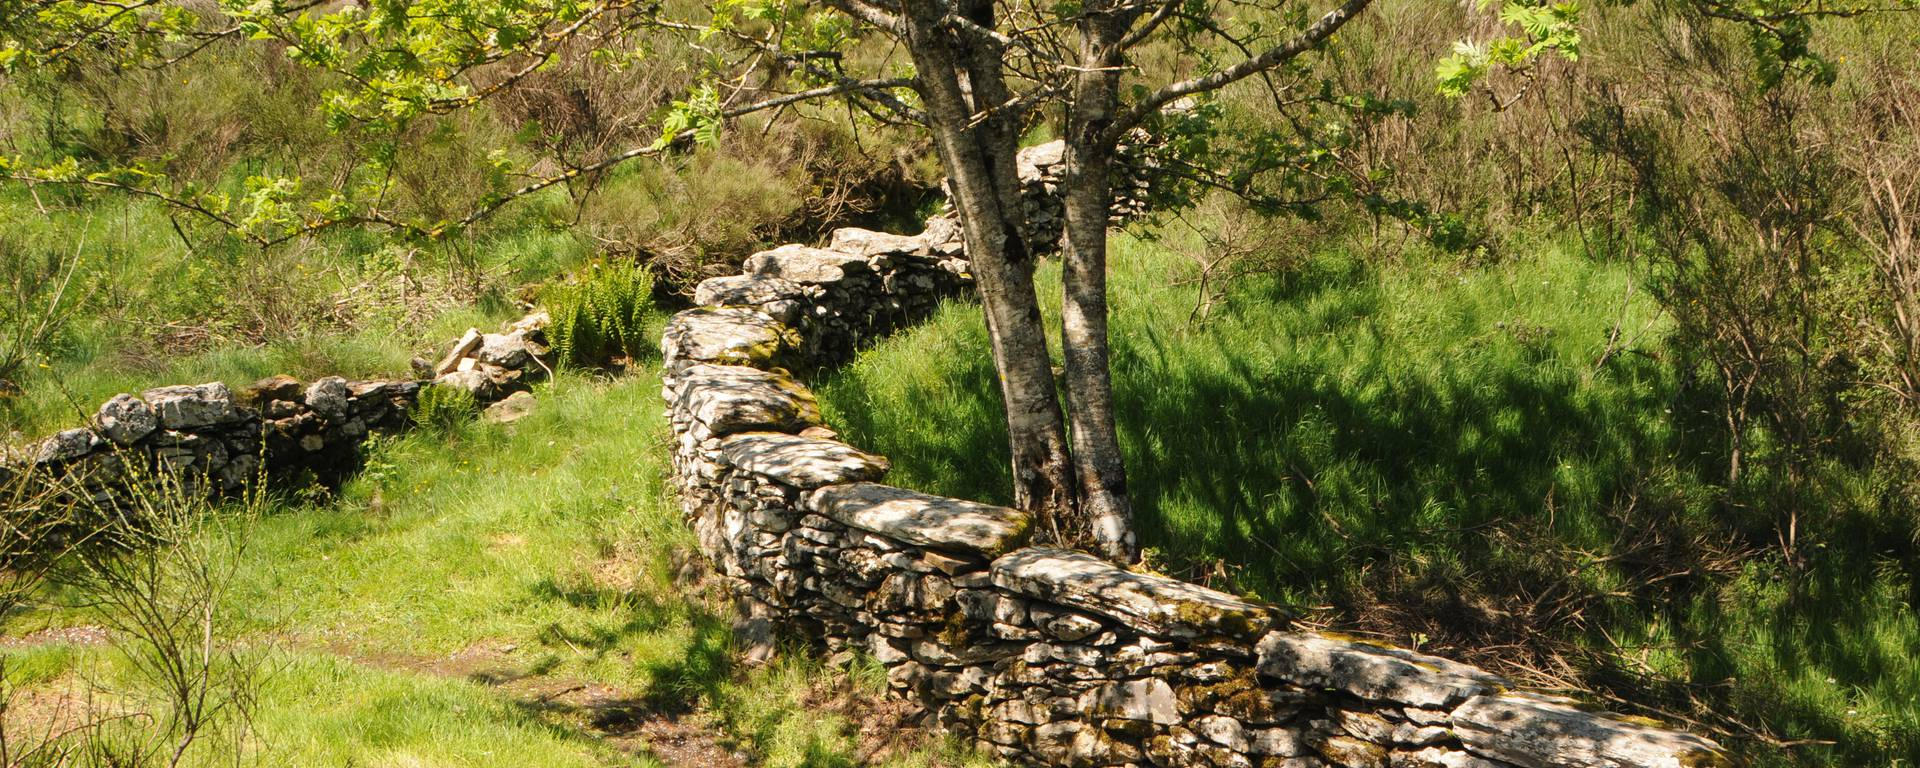 A grassy path along a dry stone wall